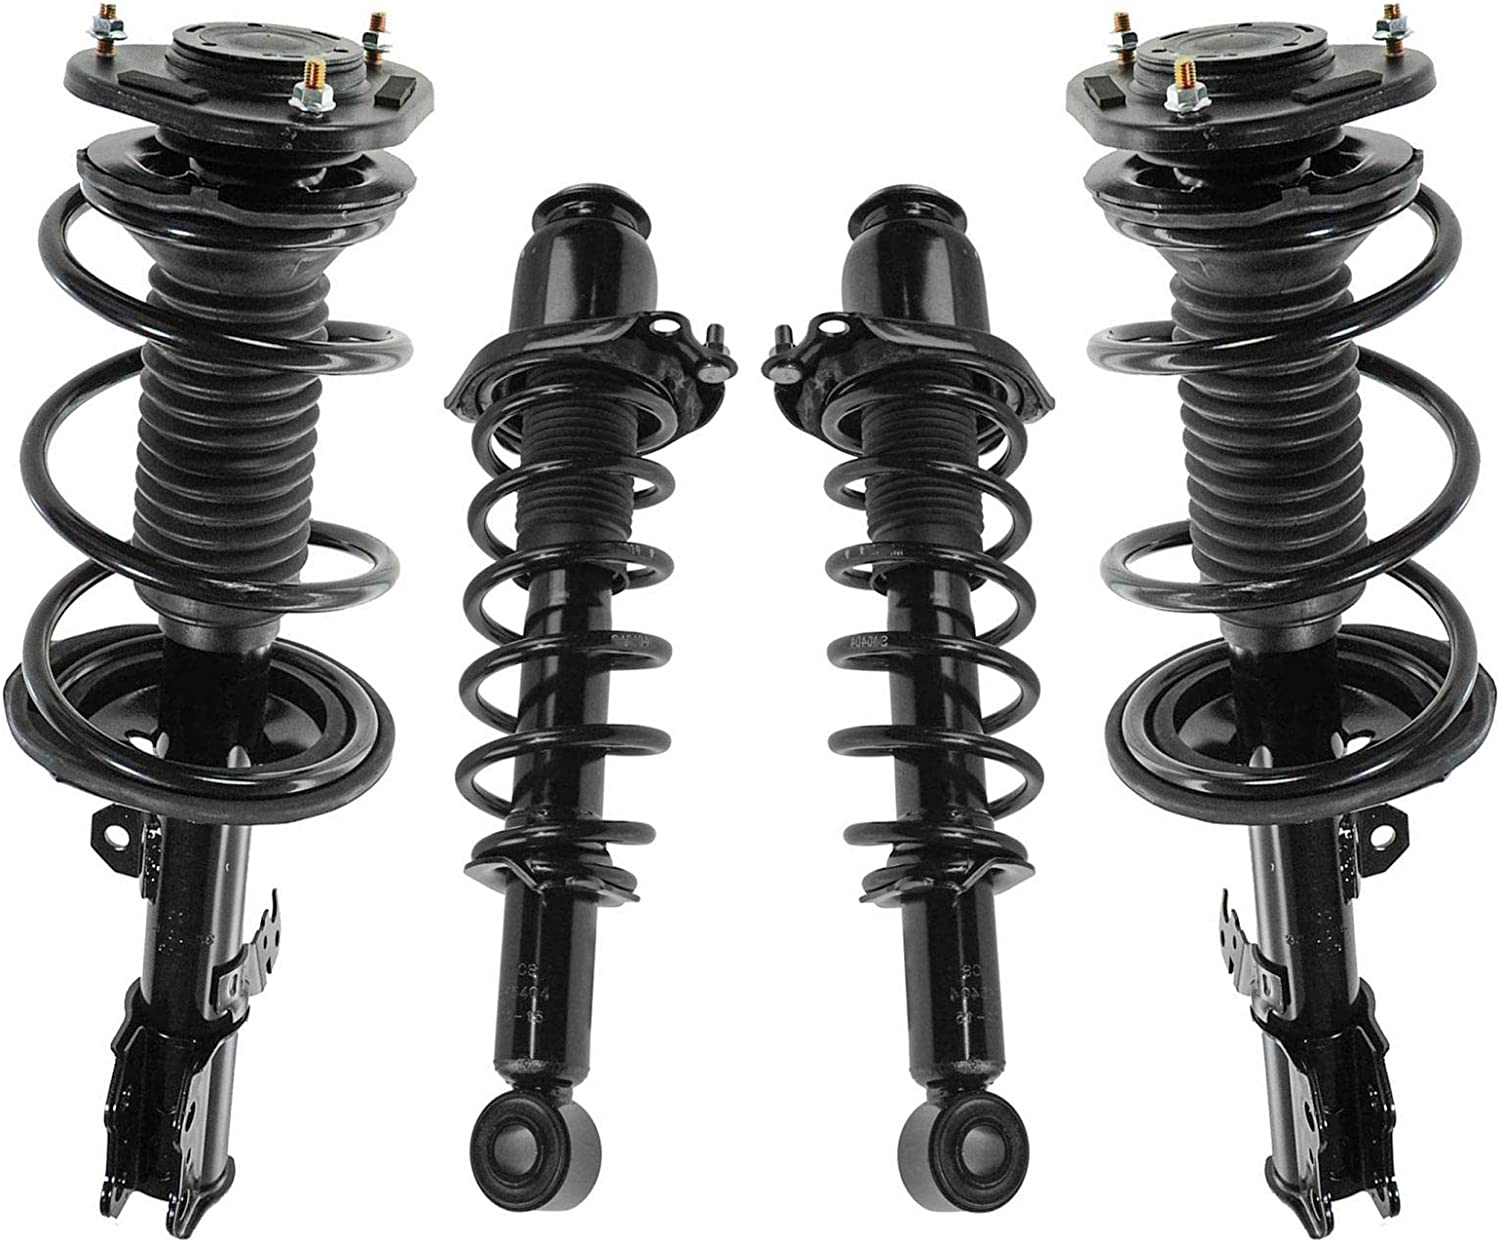 Strut /& Spring Assembly Front /& Rear Kit Set of 4 for 03-08 Toyota Corolla